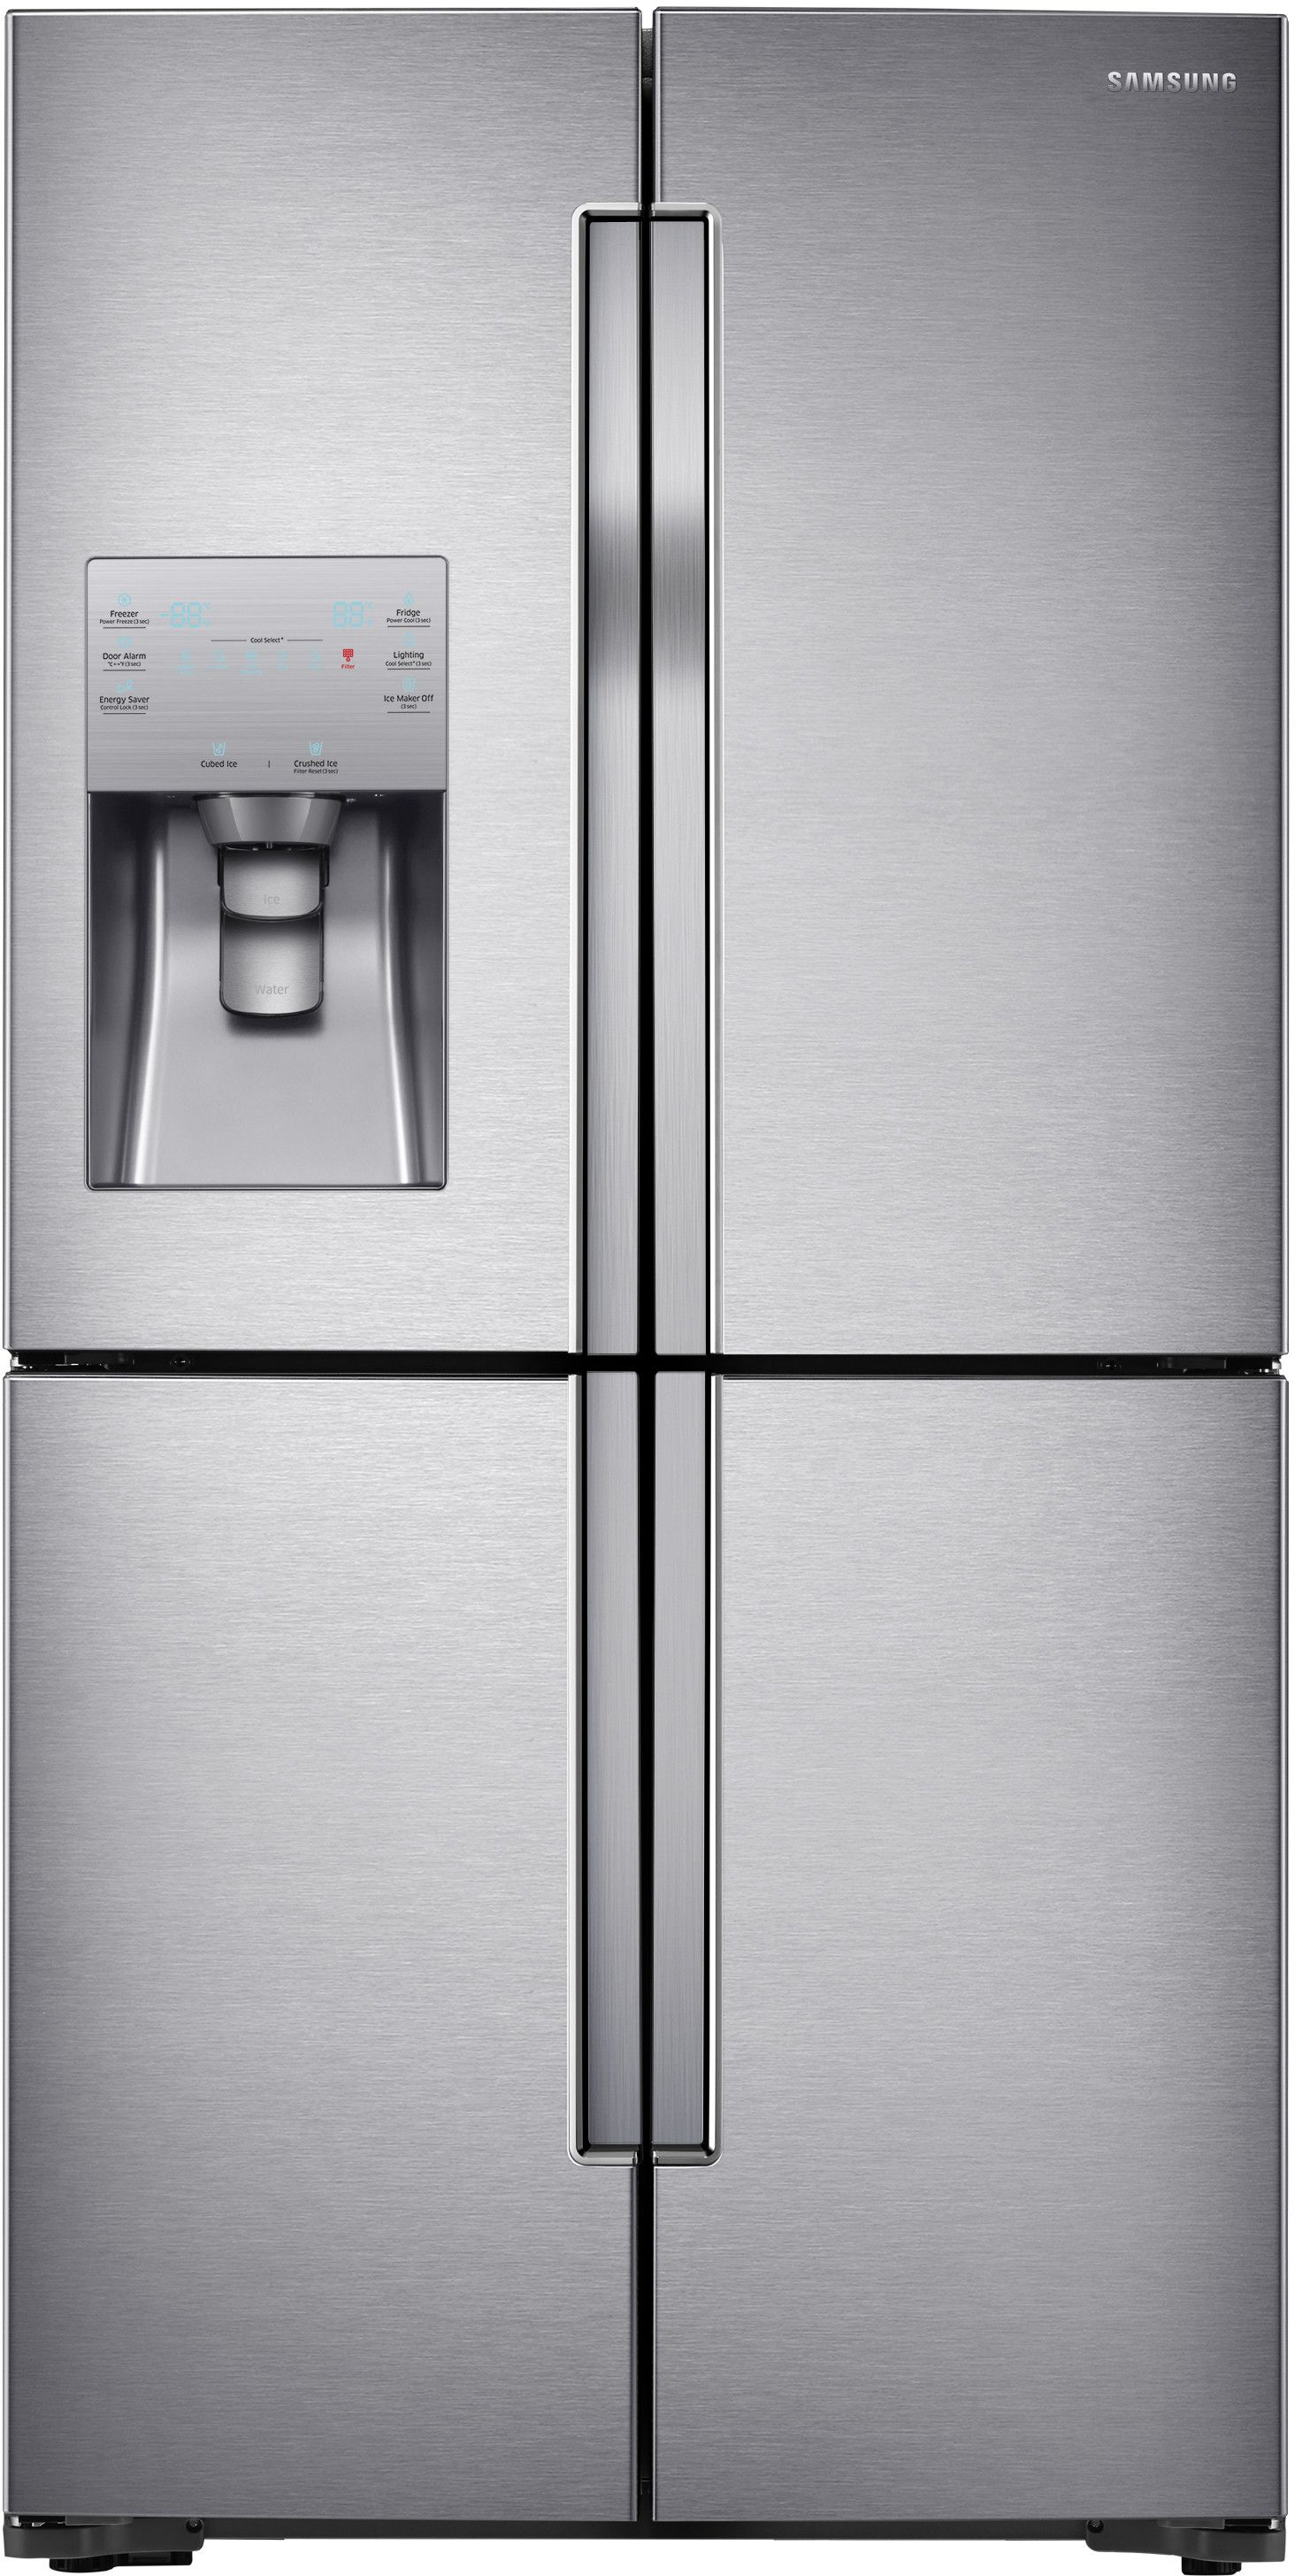 Samsung 32 French Door Refrigerator Choice Image Door Design For Home